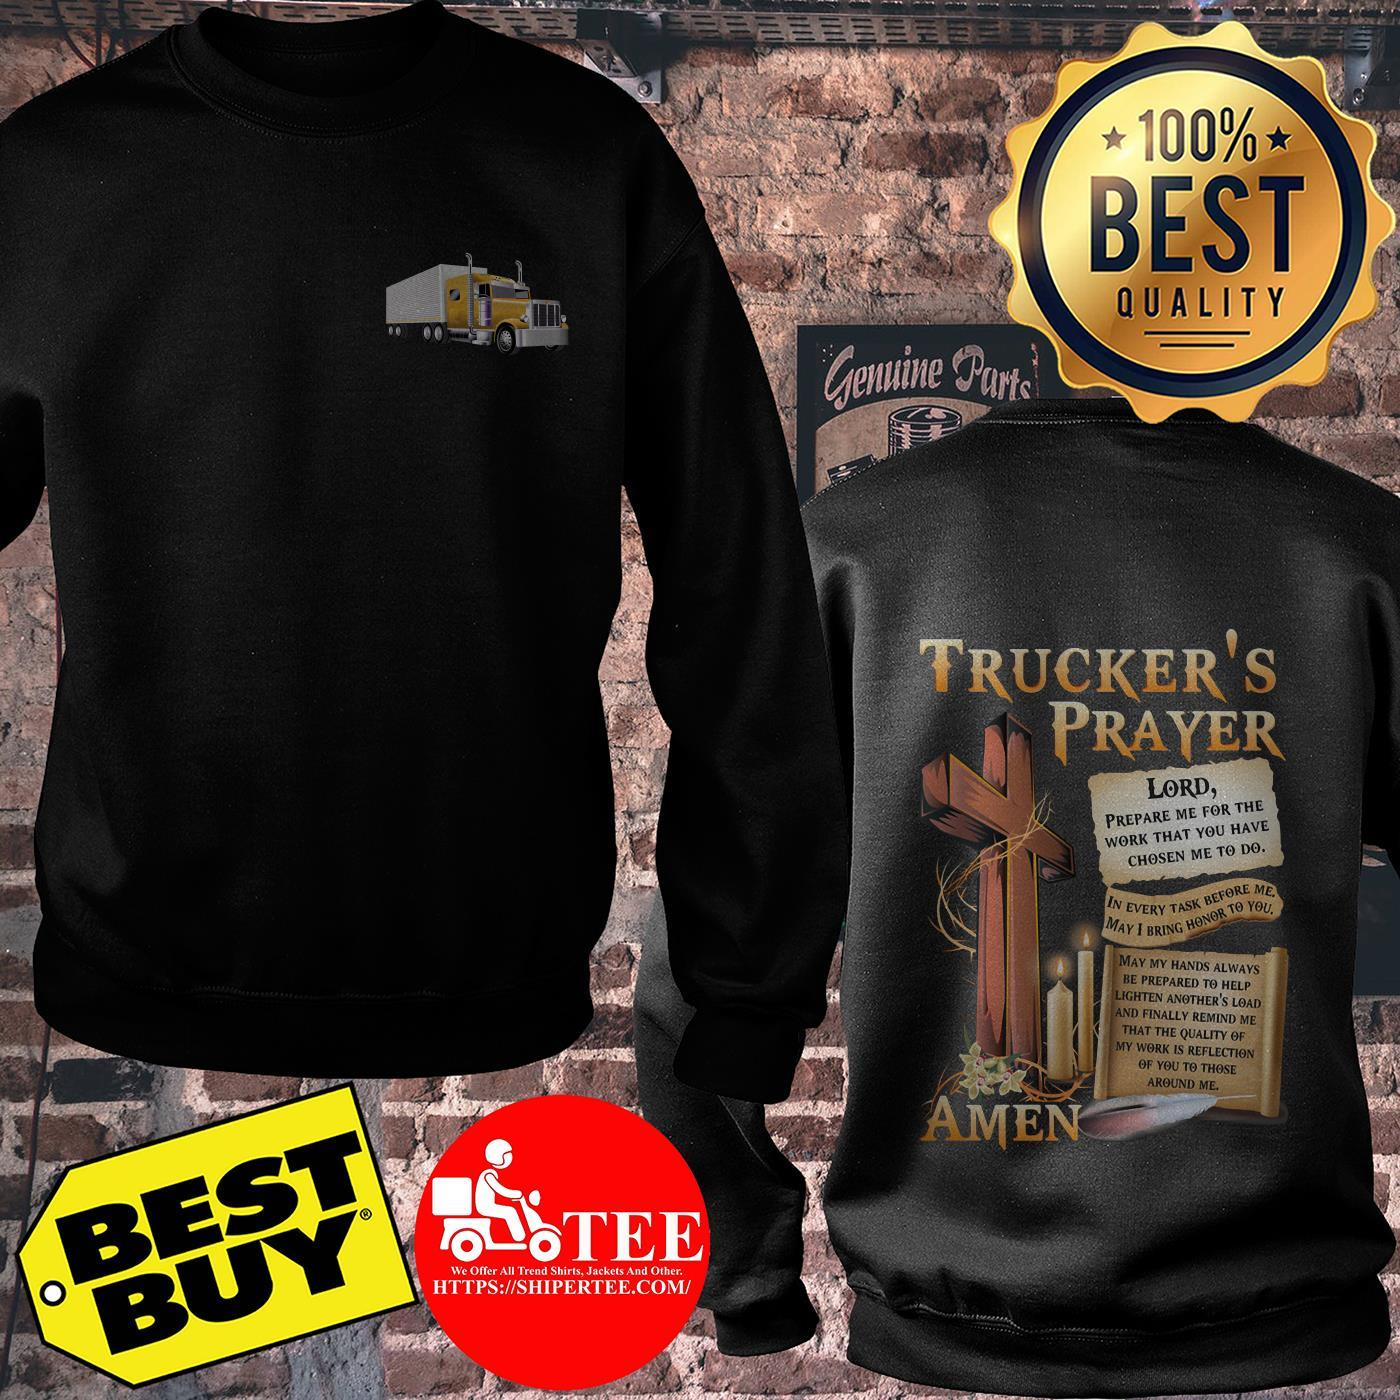 Truckers Prayer Lord Prepare Me For The Work That You Have Chosen Me To Do Wooden sweatshirt